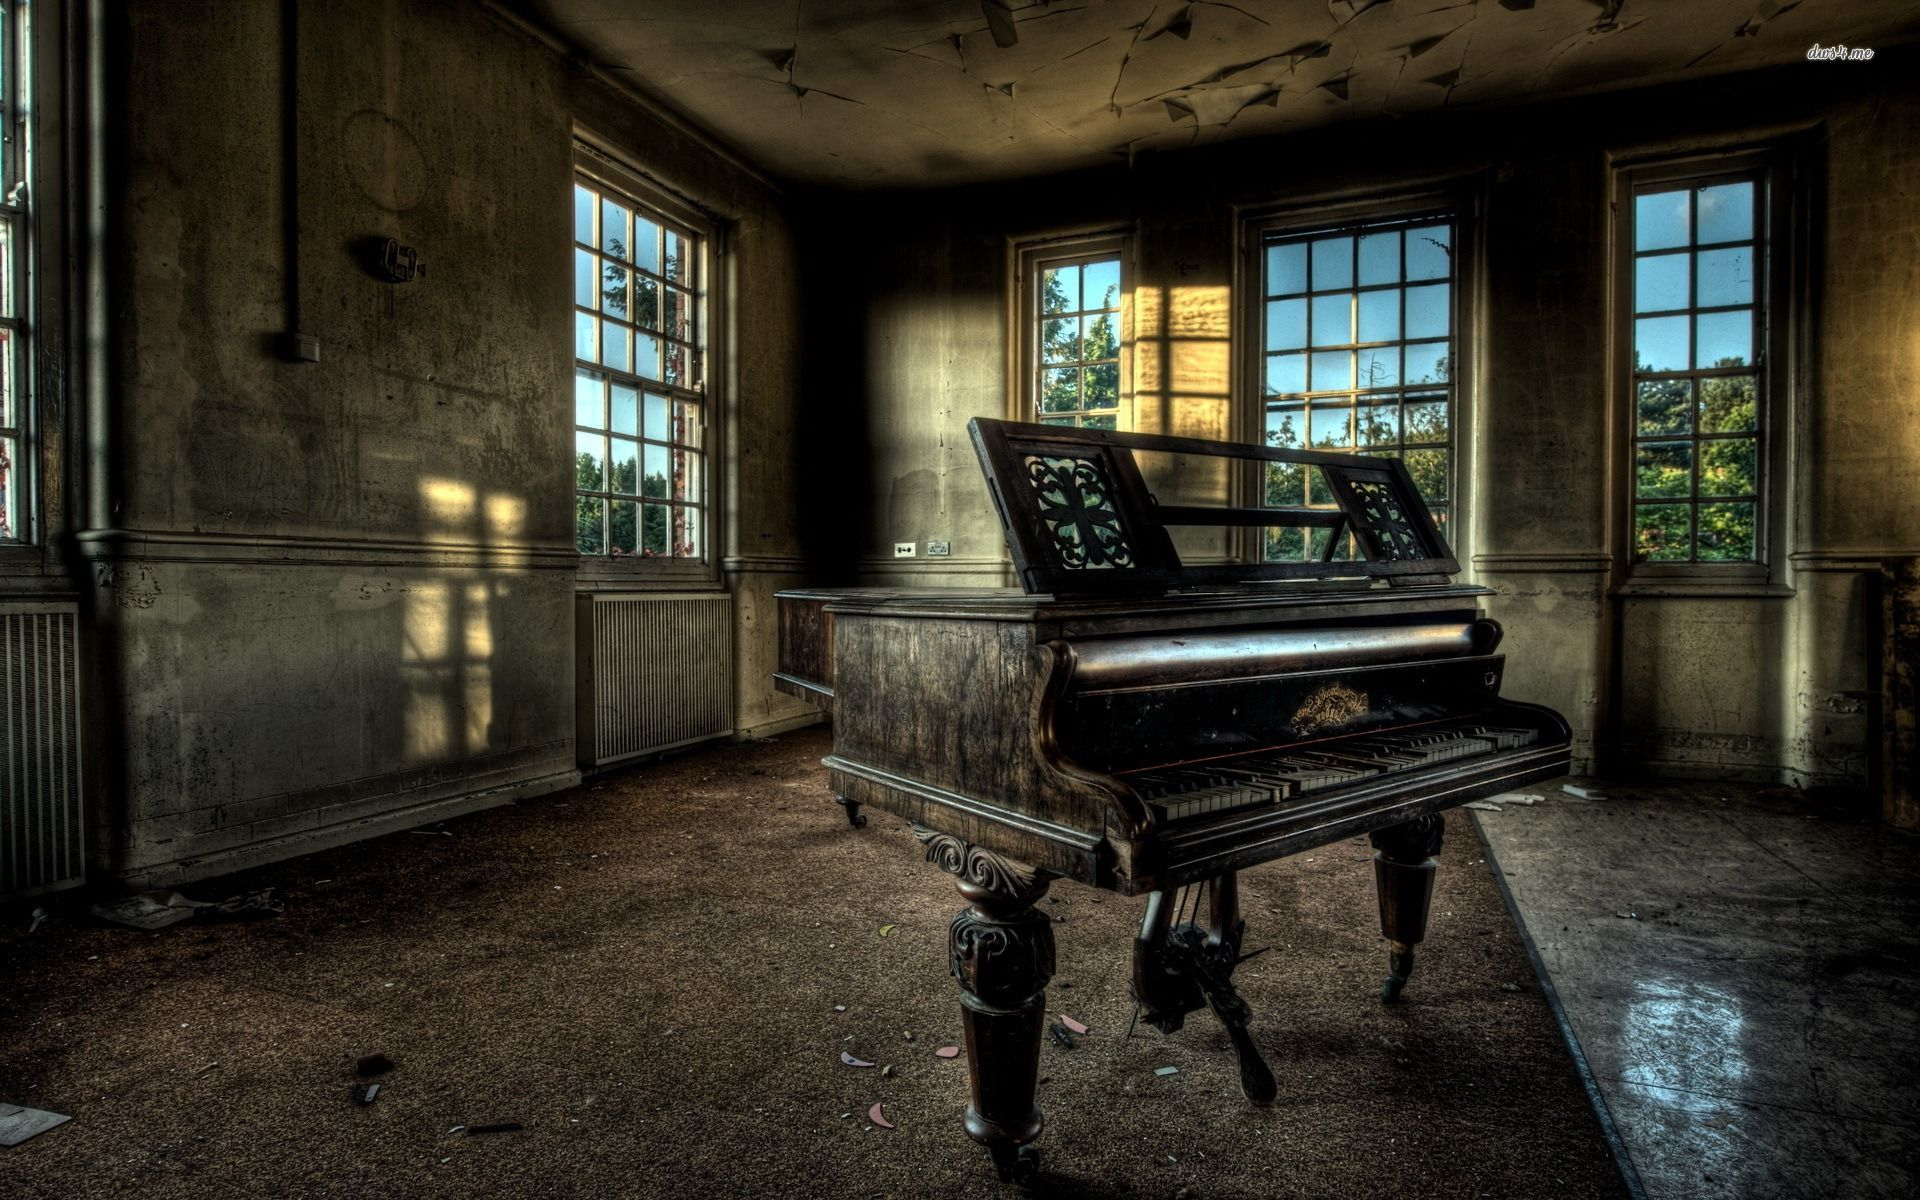 Old mansion wallpaper wallpapersafari for Classic house music downloads